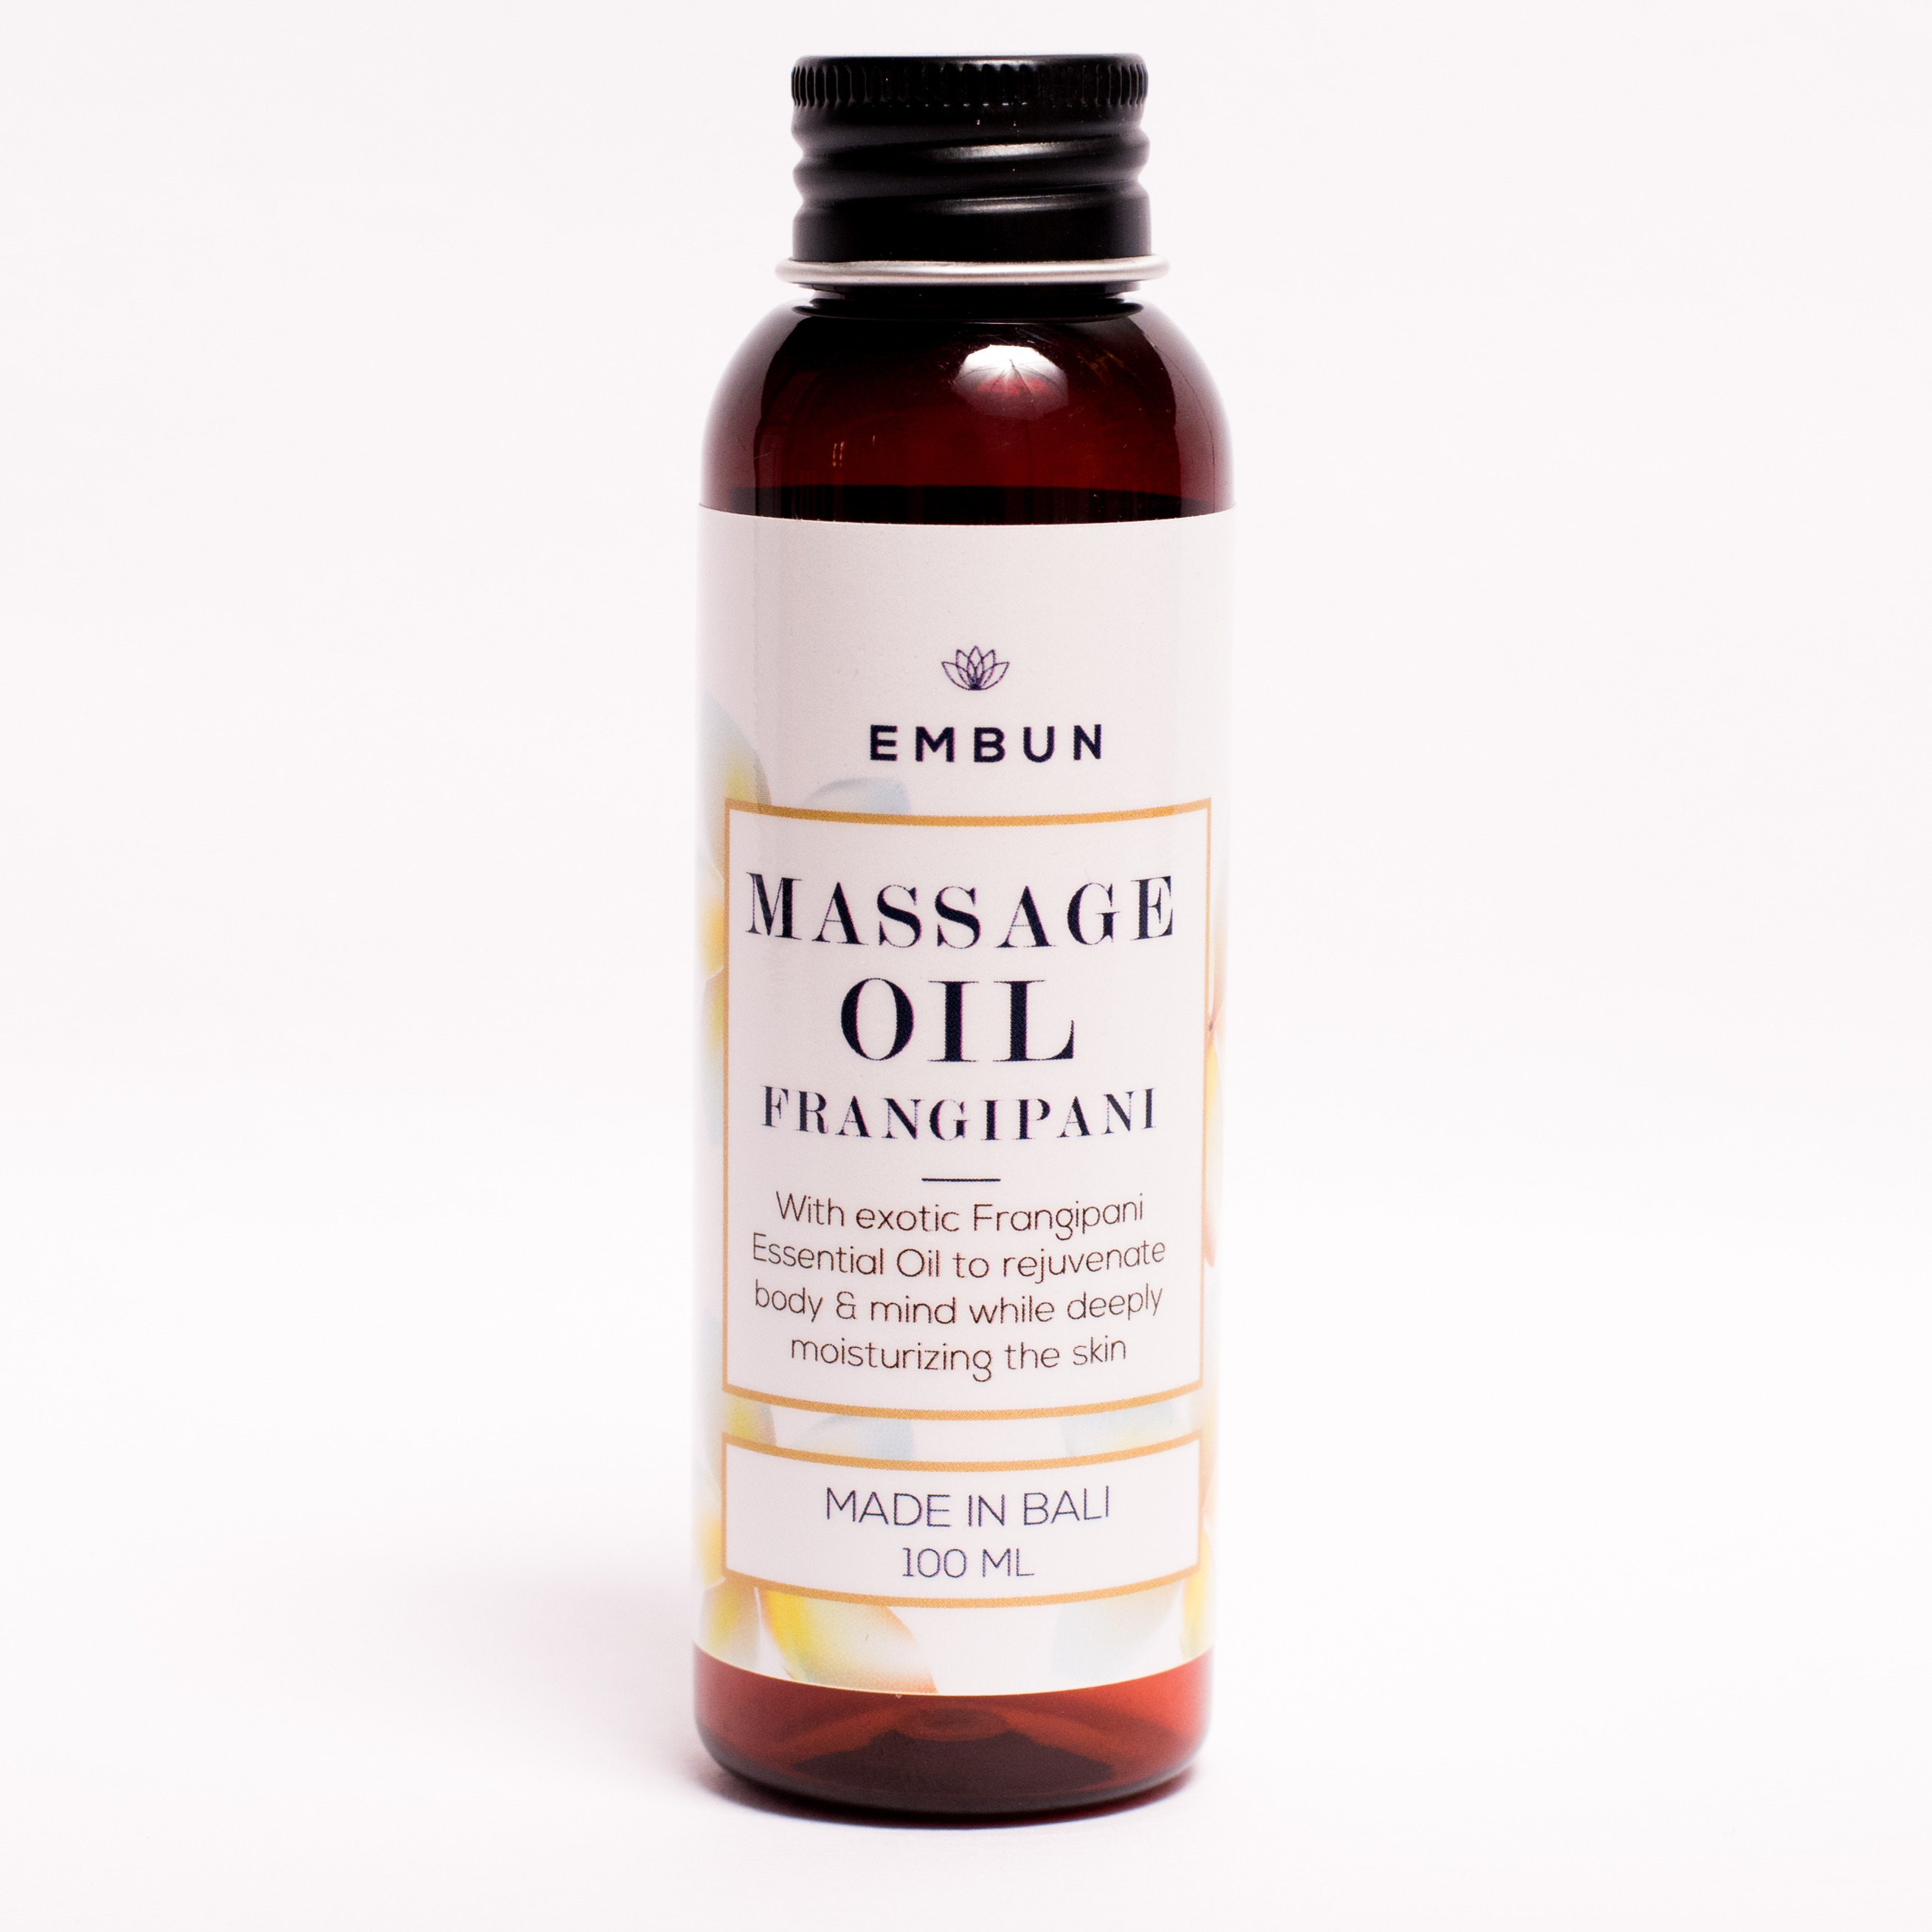 Embun Massage Oil Rejuvenating Frangipani